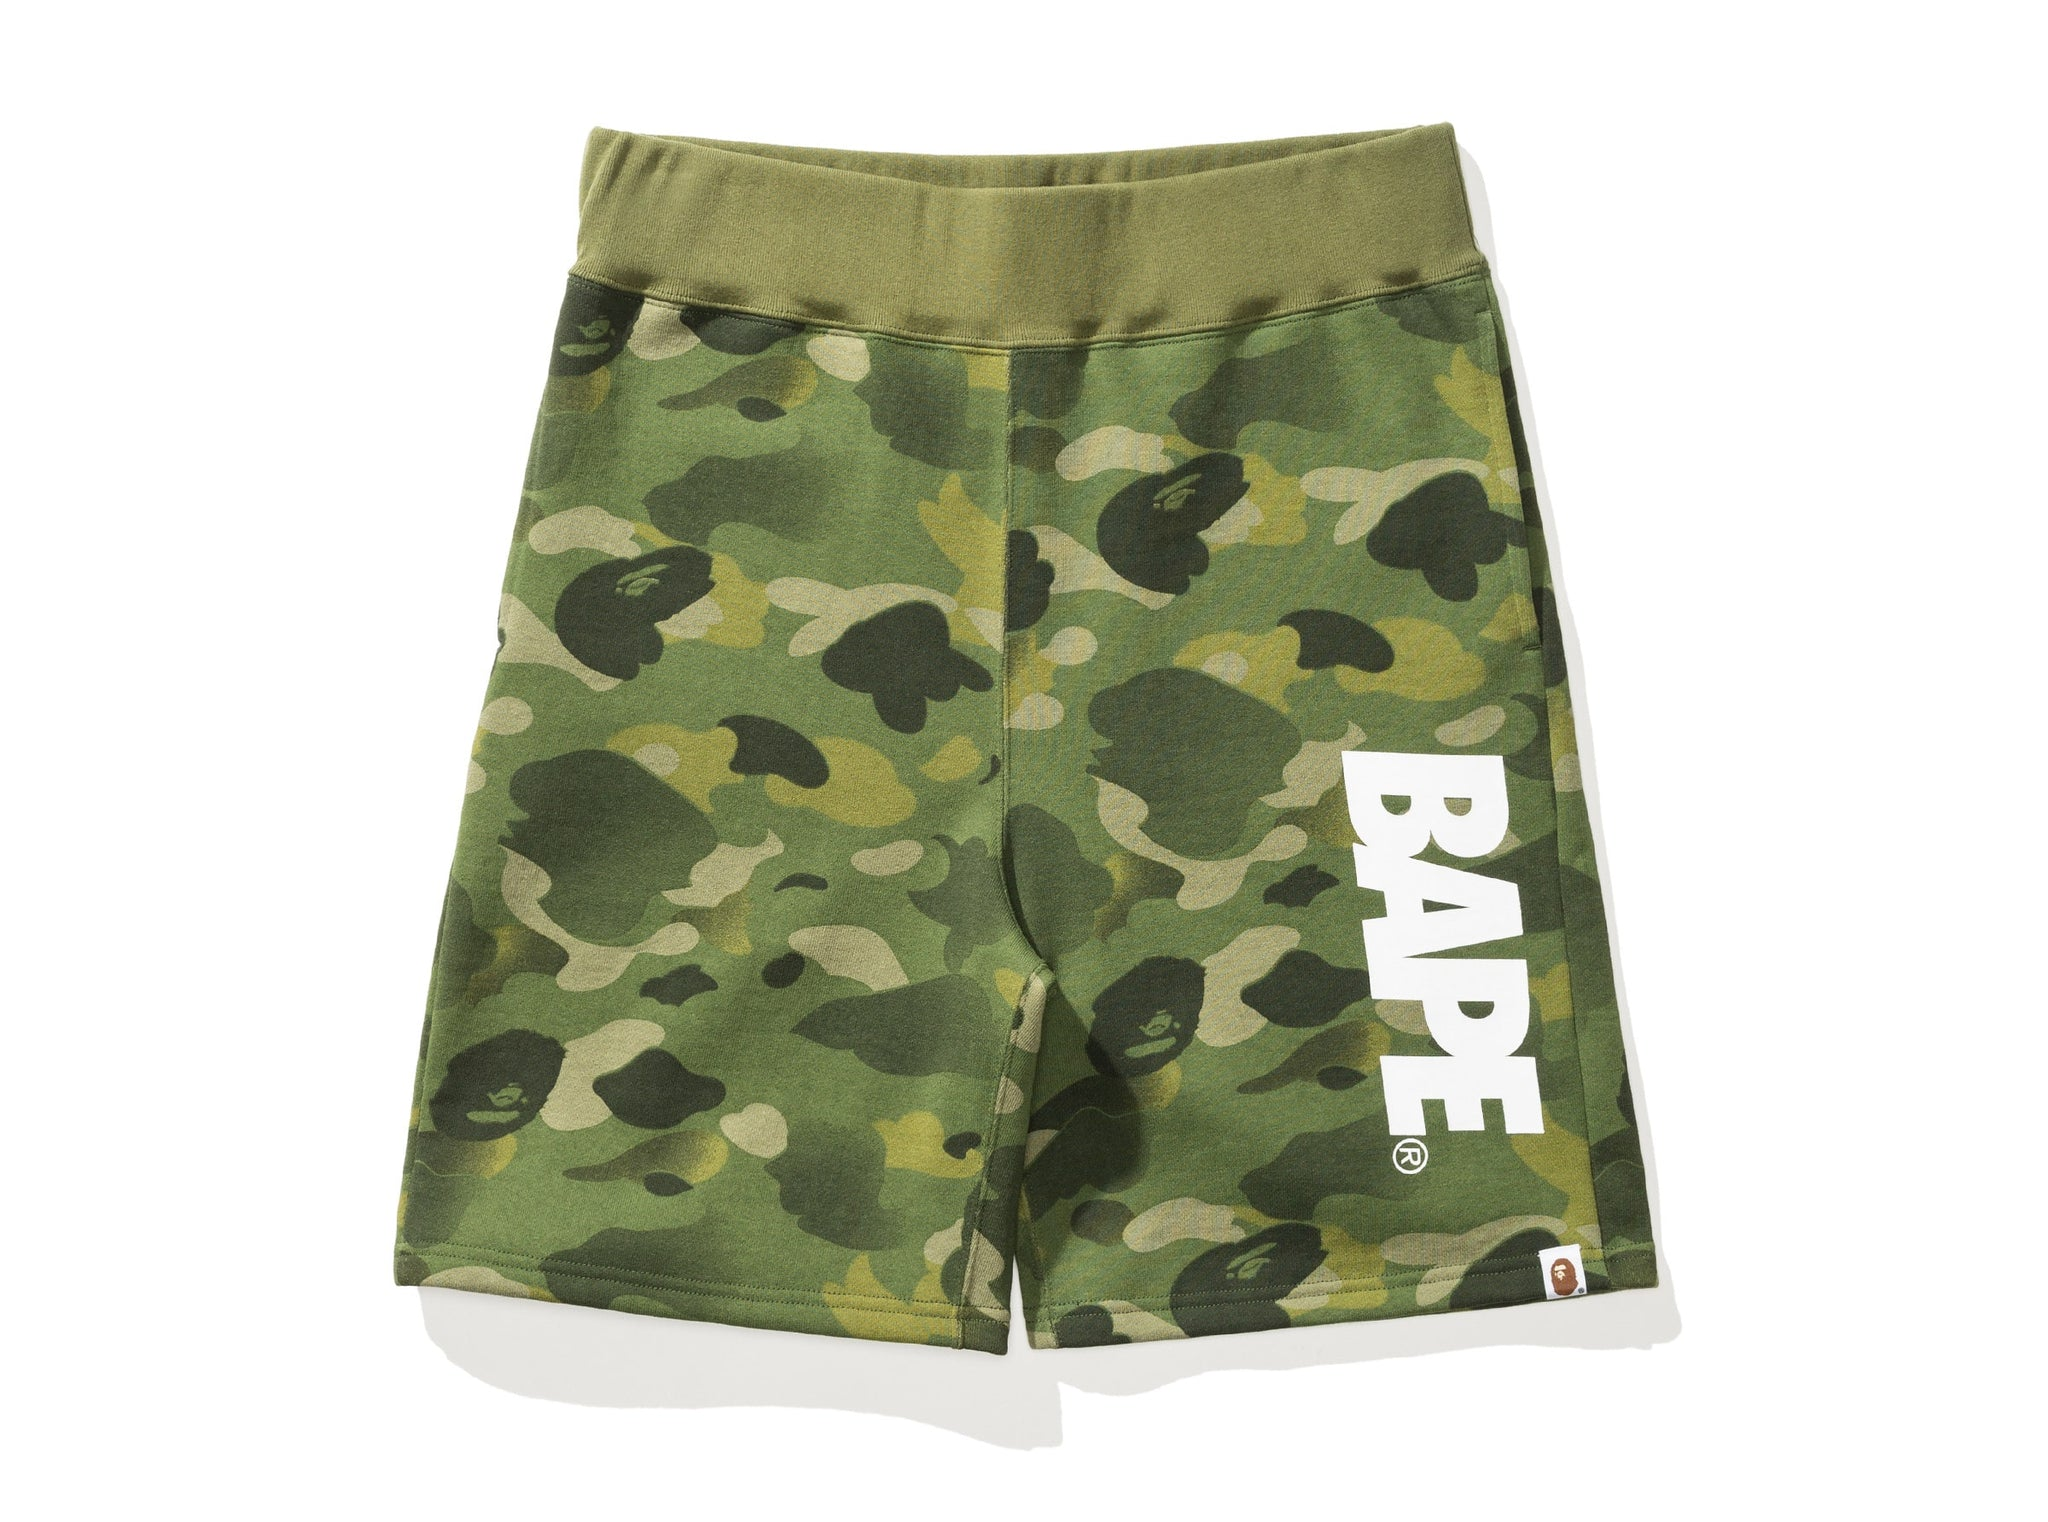 BAPE GRADATION CAMO SWEAT SHORTS